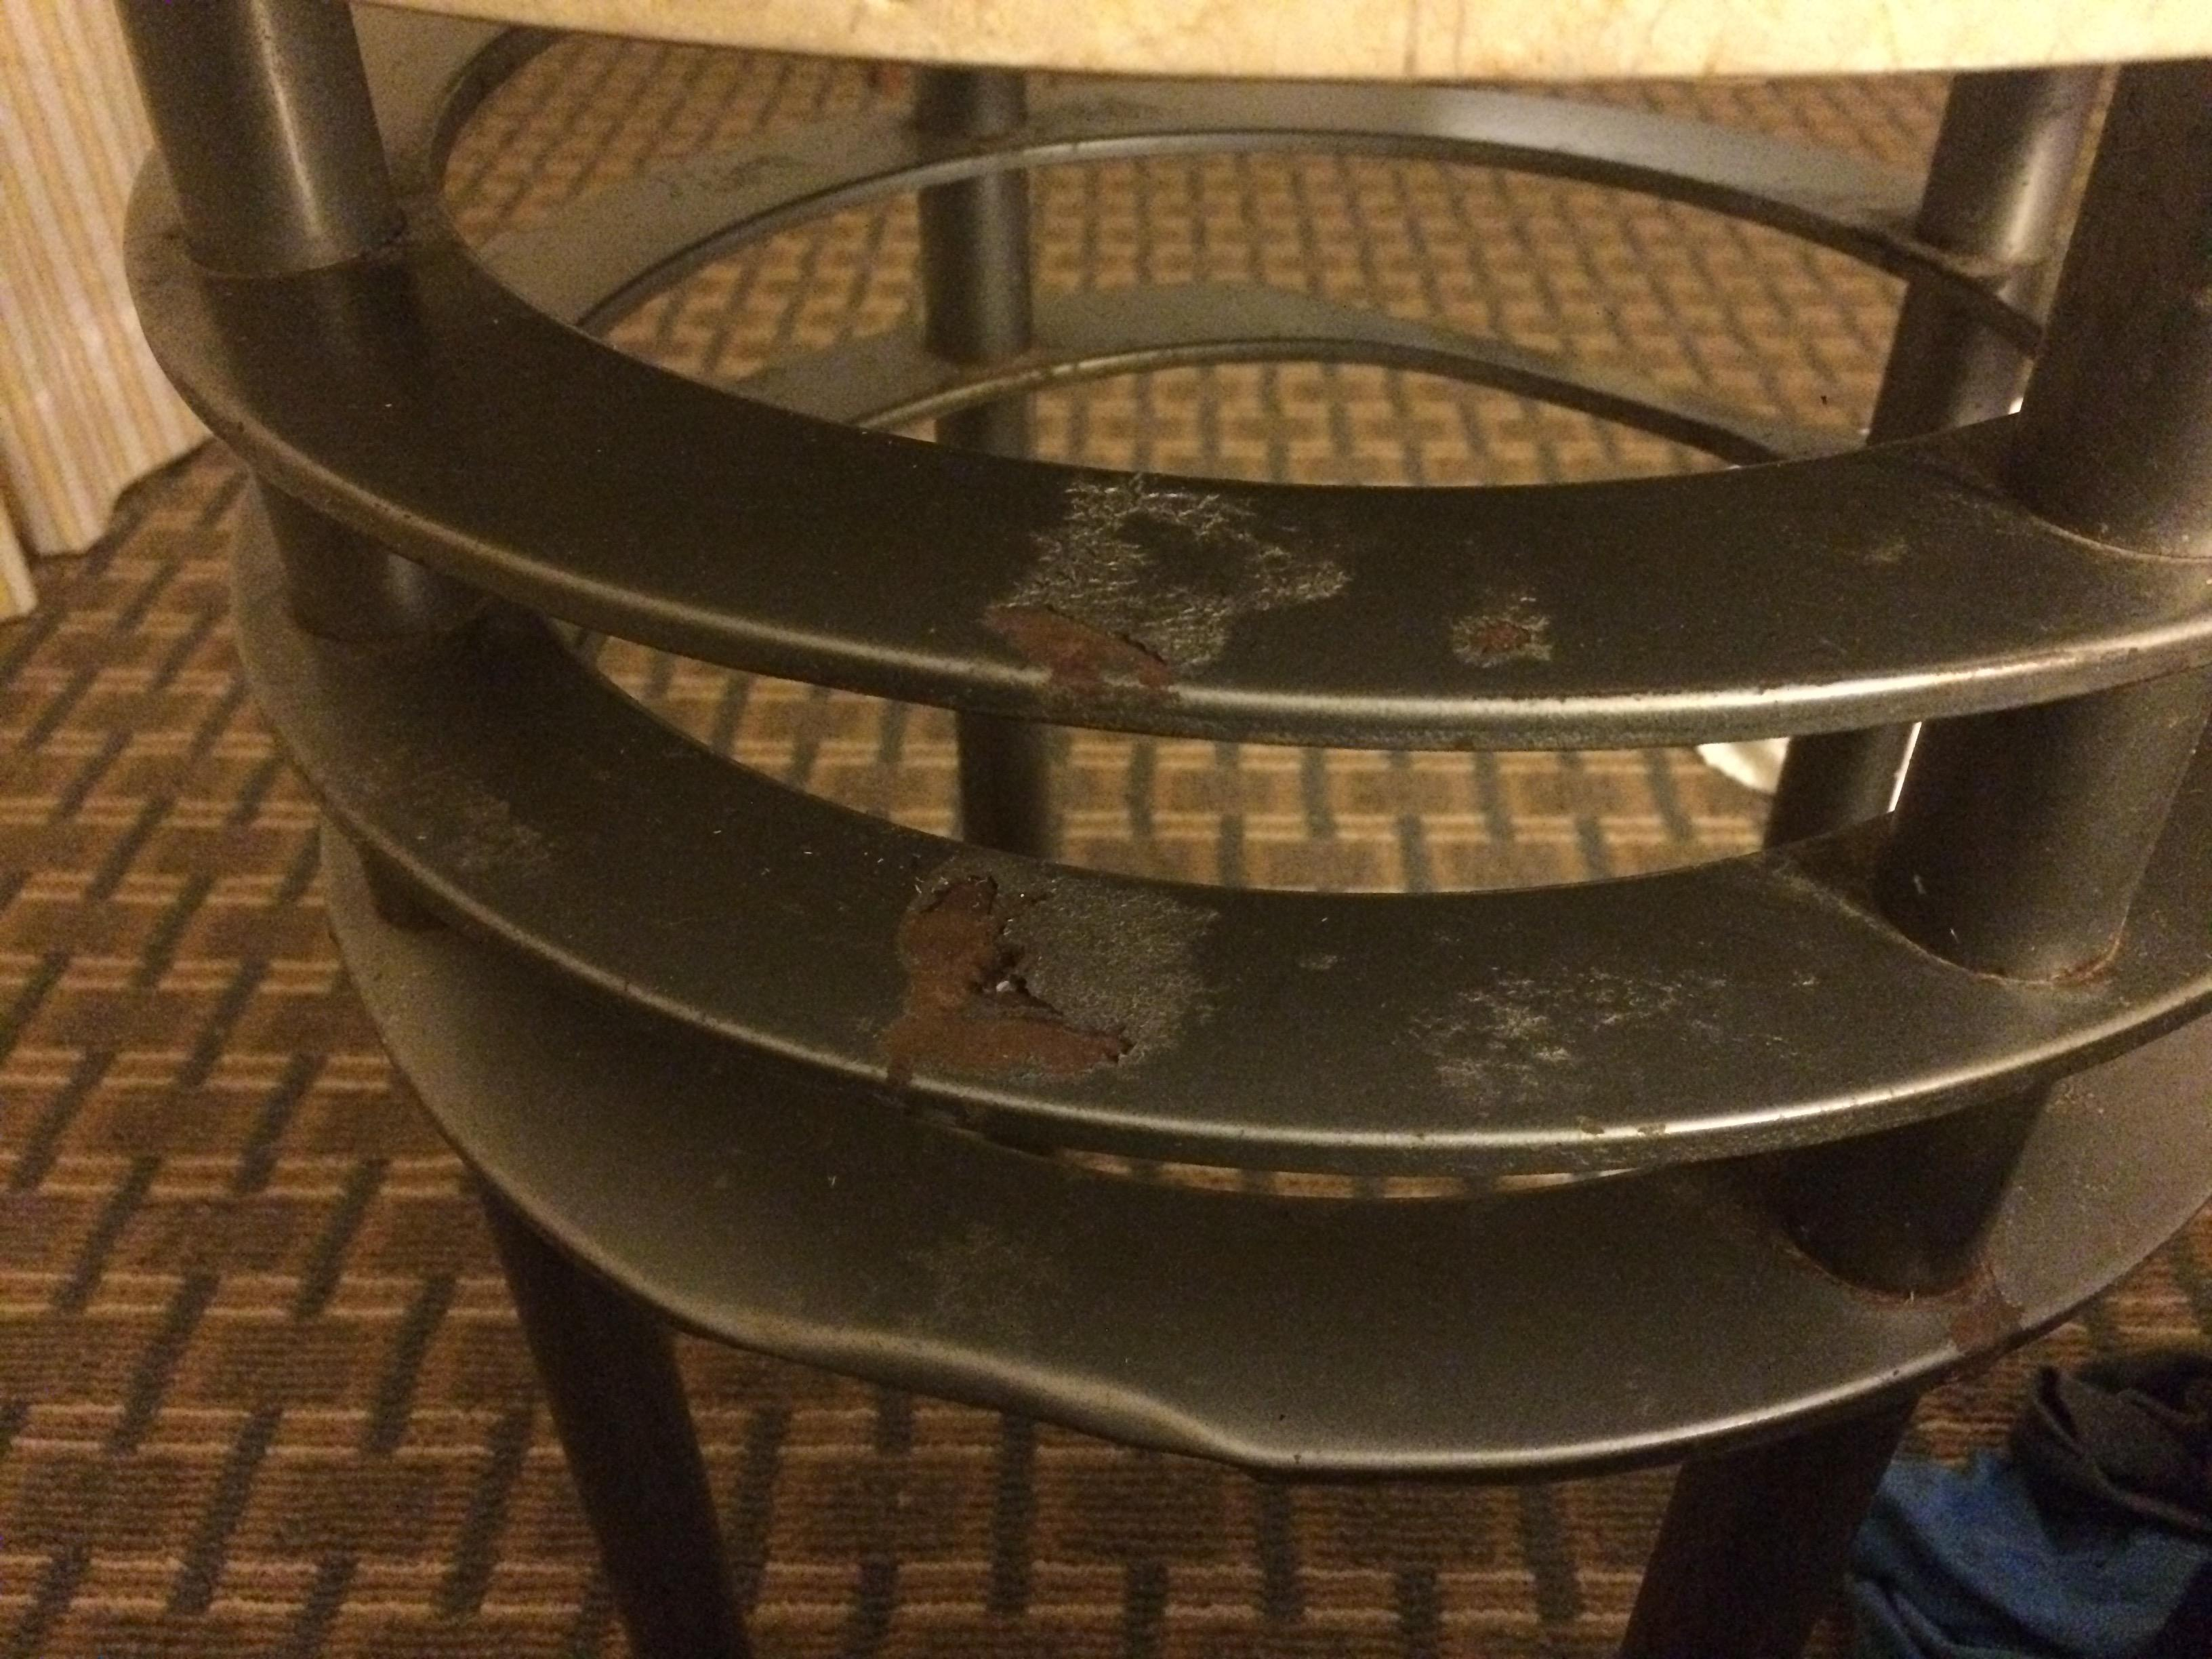 Side table in the room